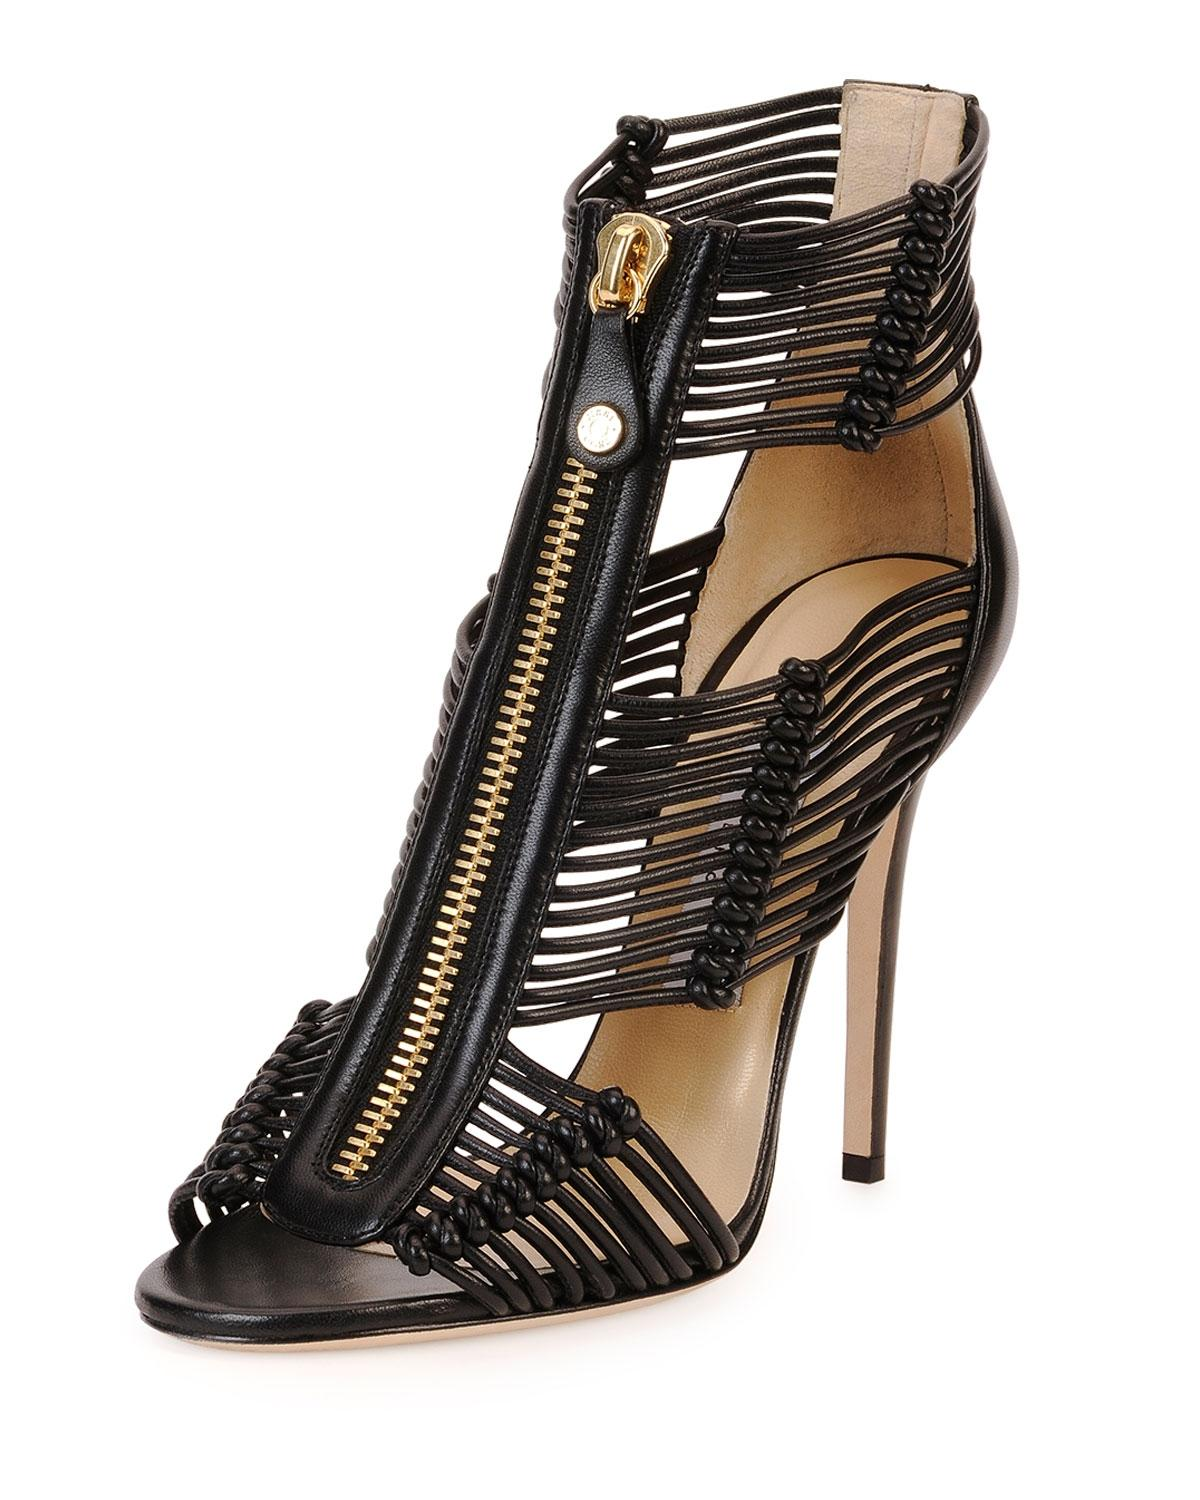 4f0d27ba6a4e ... Jimmy Choo Black Gold Leather Katie Strappy Zip-front Sandals Size Size  Size EU 38.5 ...